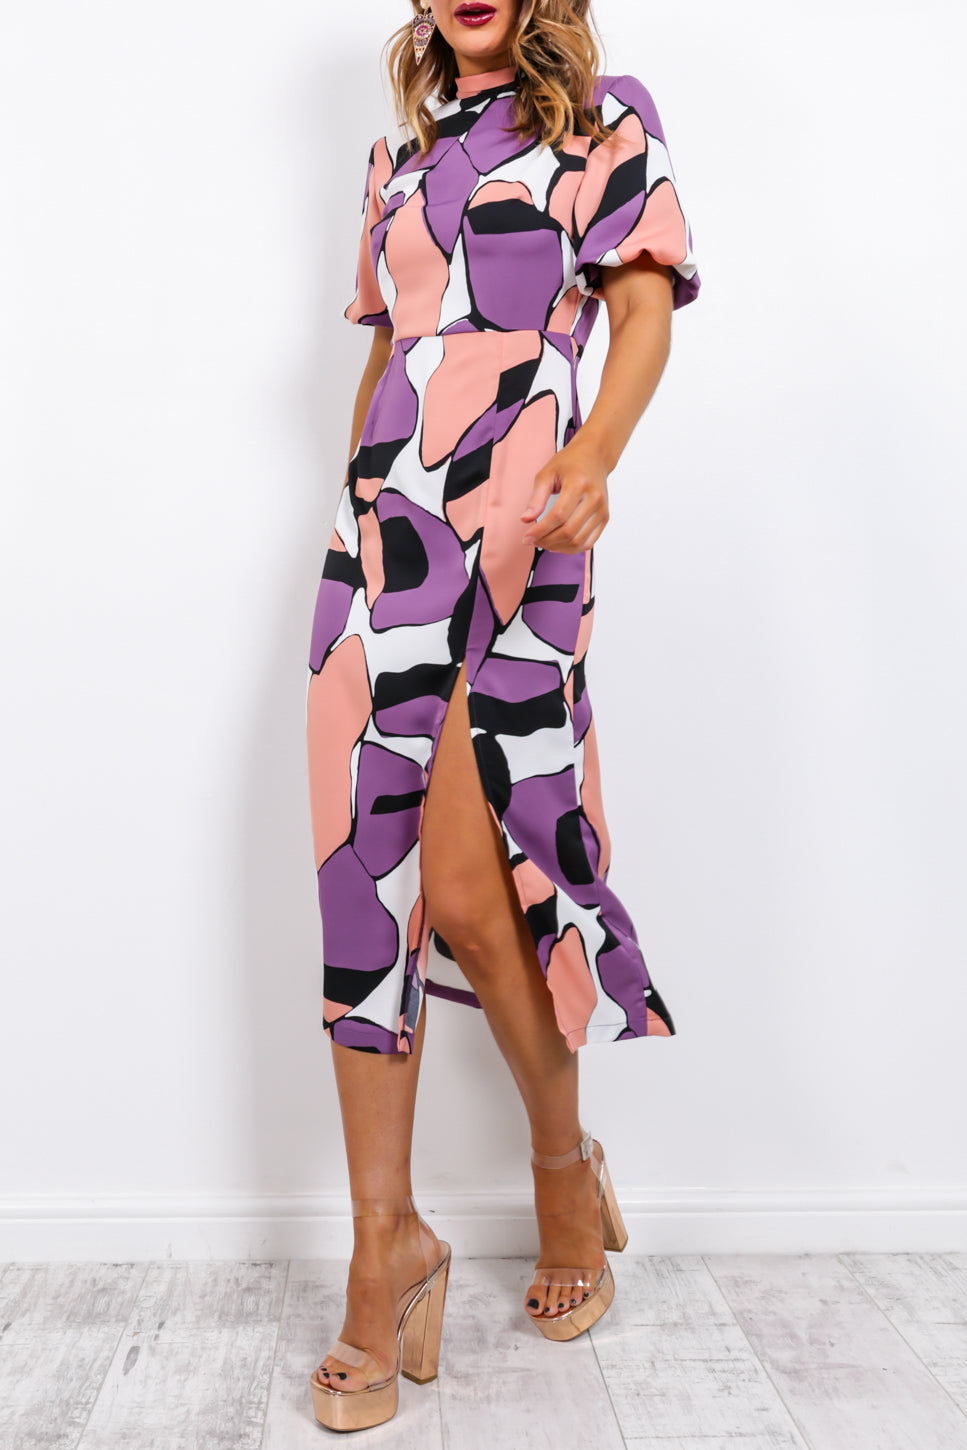 https://cdn.shopify.com/s/files/1/0062/6661/7925/files/product-video-back_to_you-dress-in-purple.mp4?5932